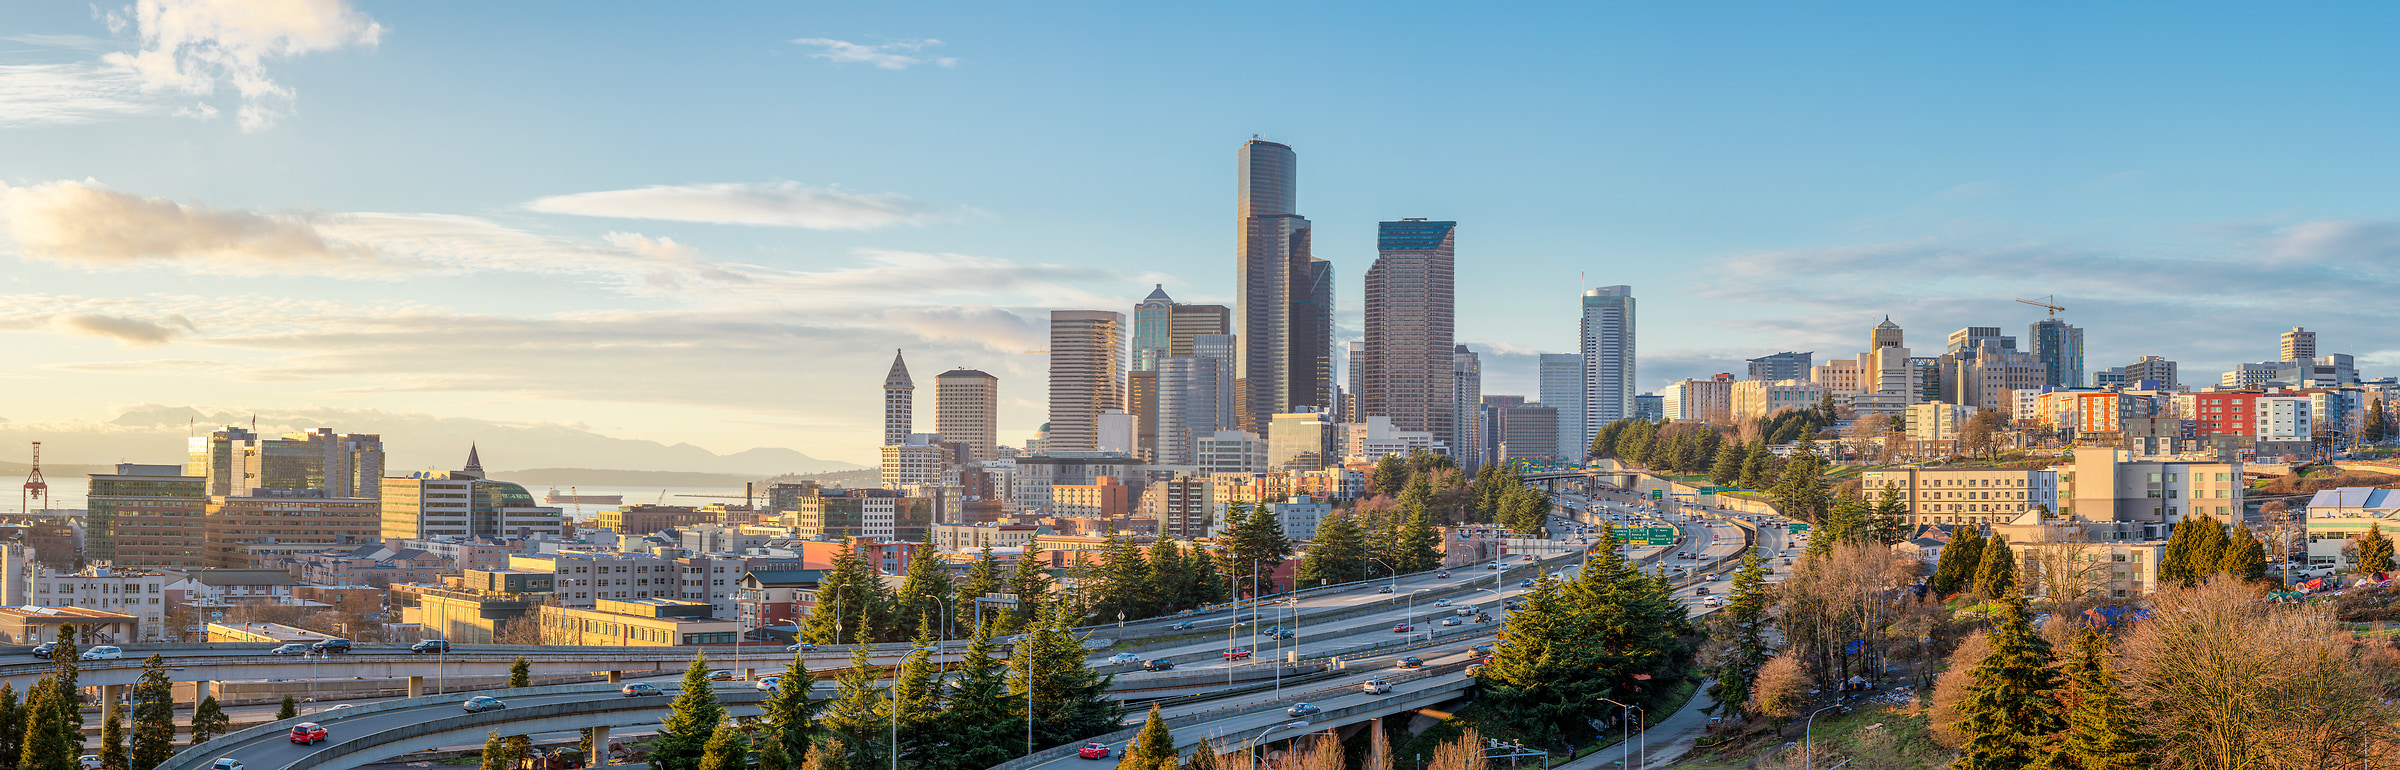 222 megapixels! A very high resolution, large-format, panorama photo print of the Seattle skyline during the day; photograph created by Greg Probst in Seattle, Washington